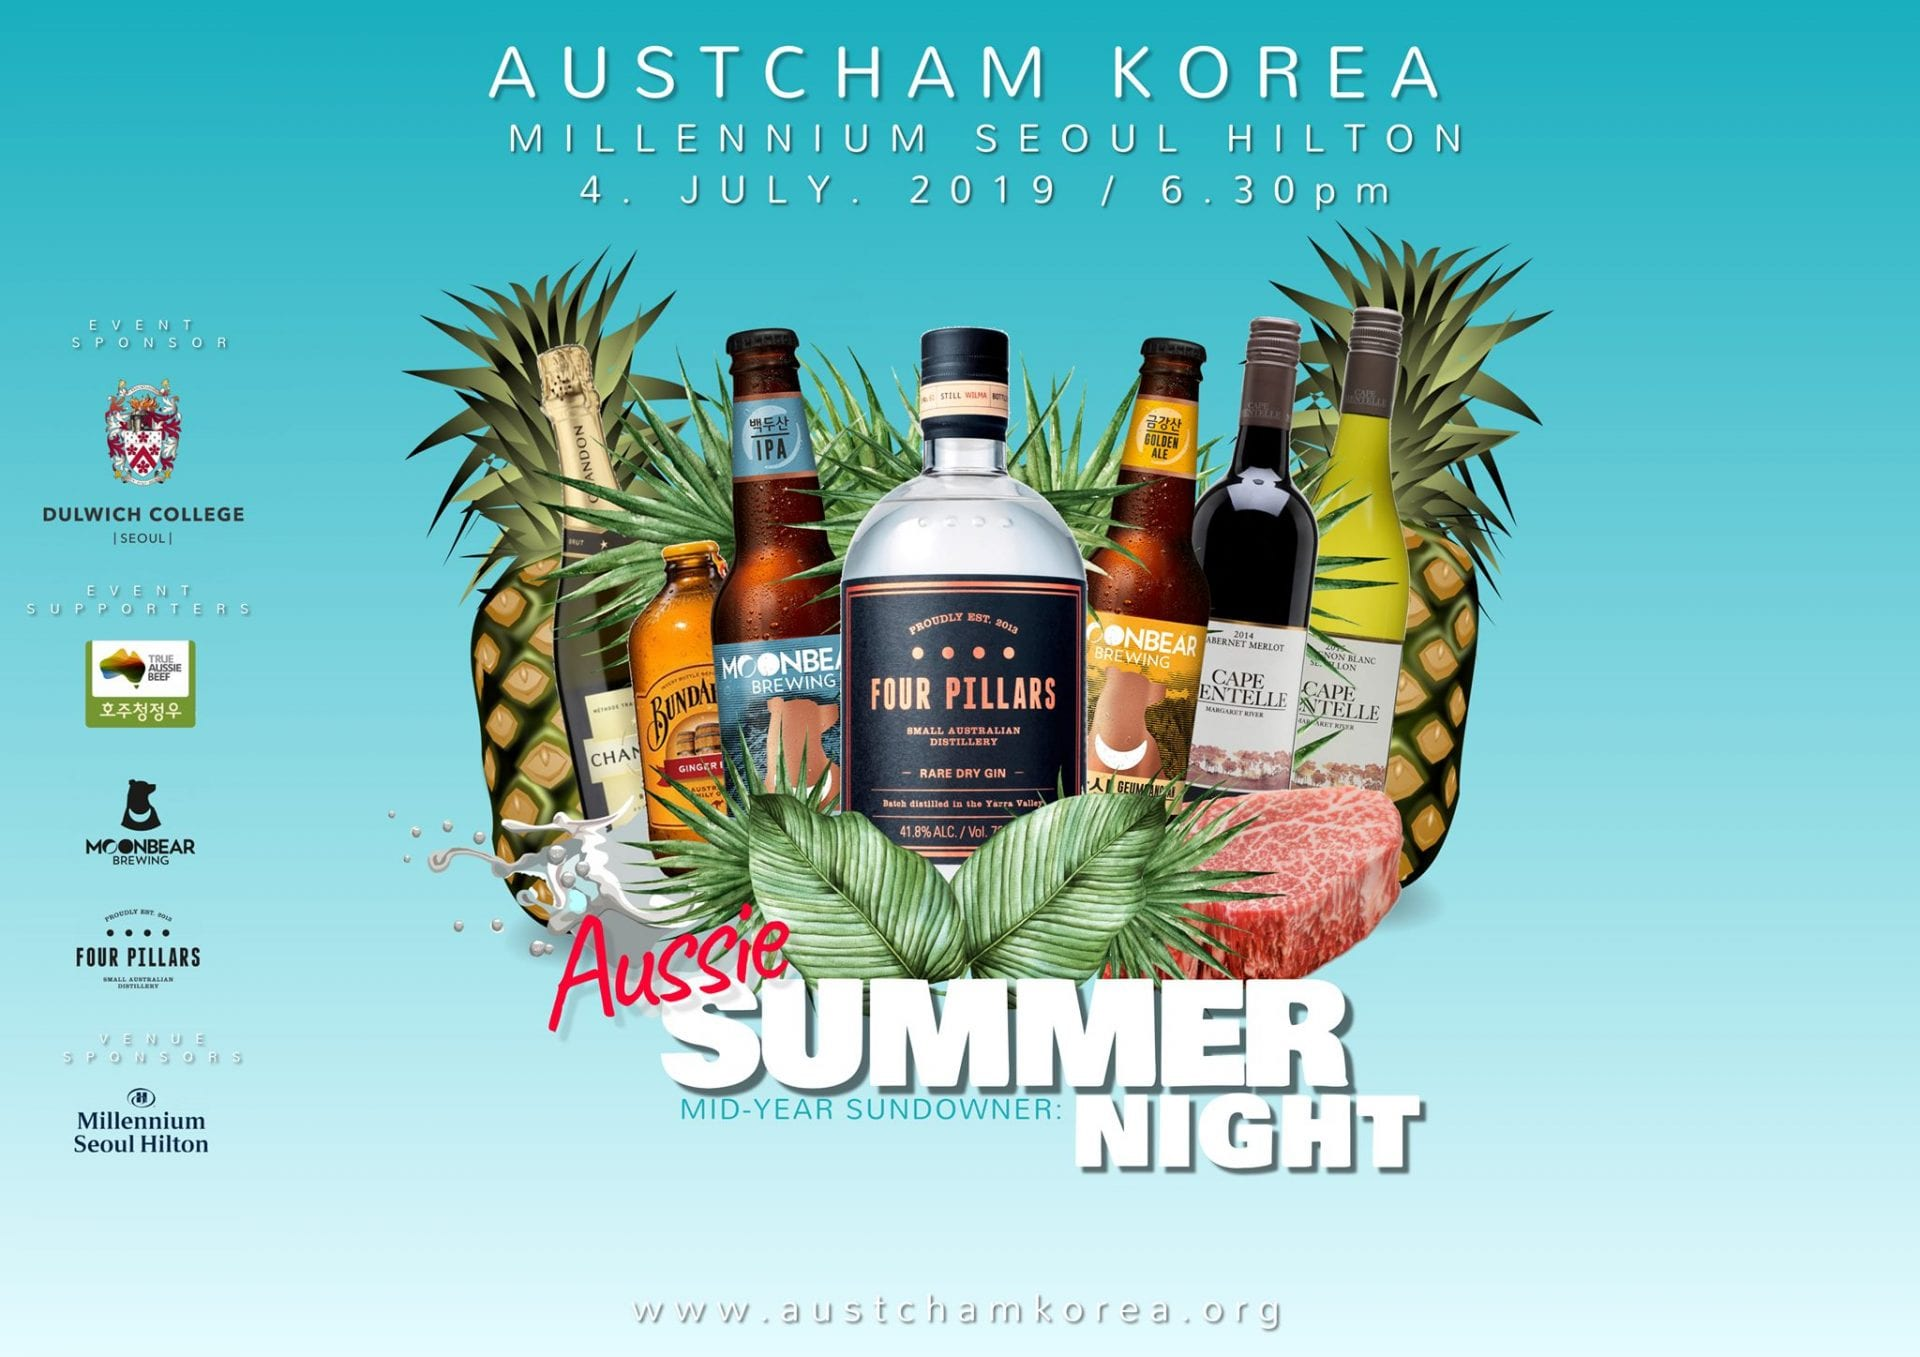 aussie australia summer night australian chamber of commerce seoul korea millenium seoul hilton